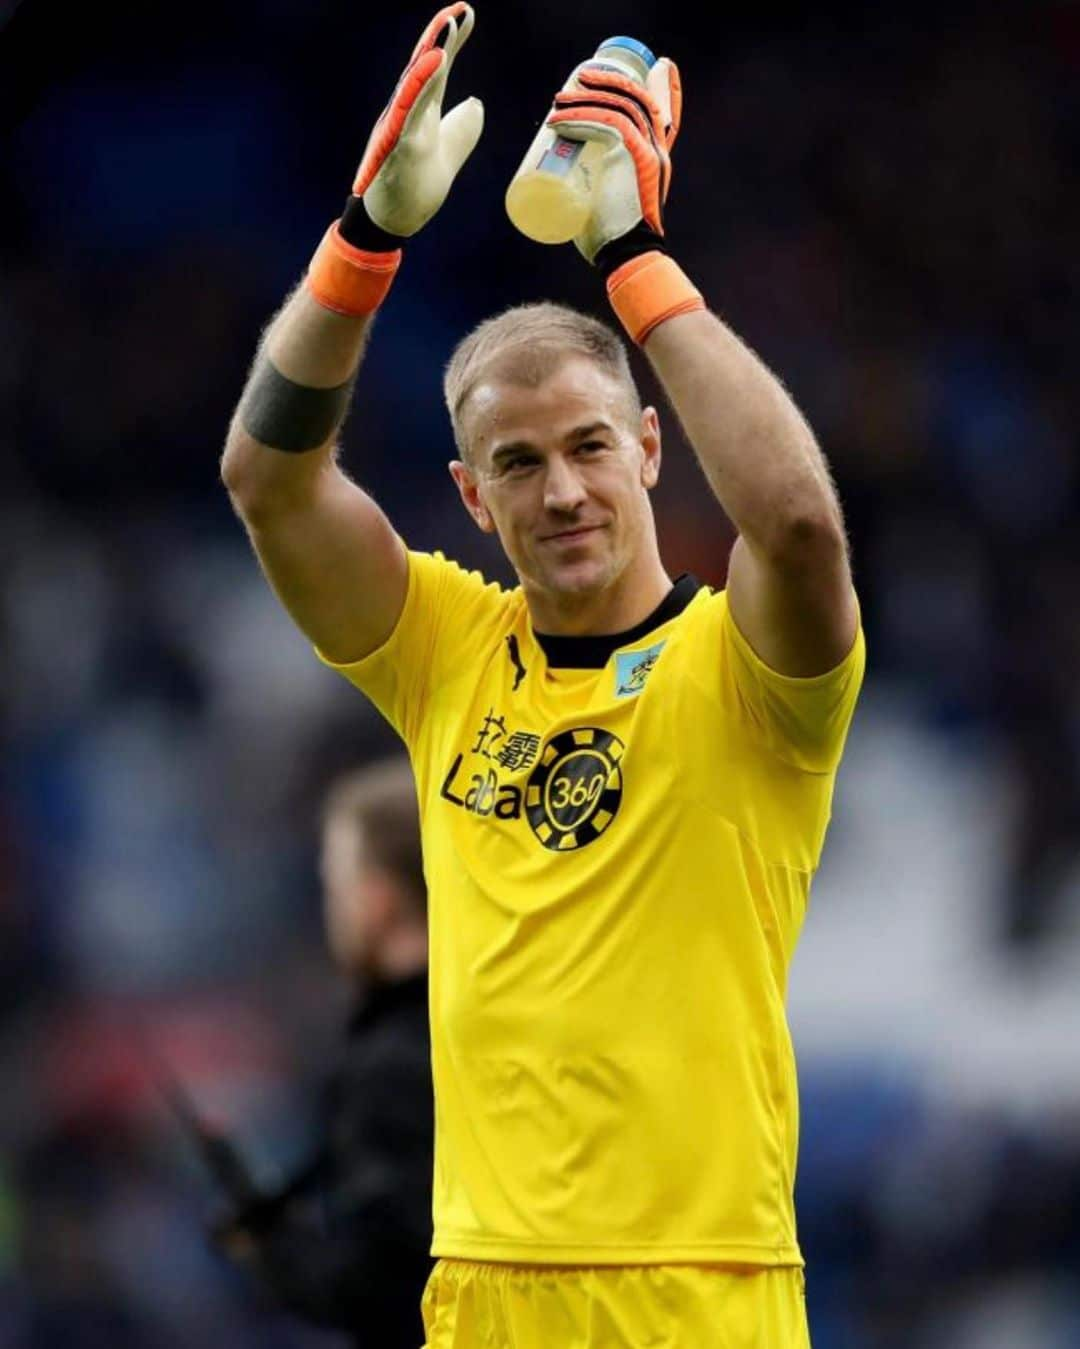 Joe Hart British Sports Persons (Football Player)